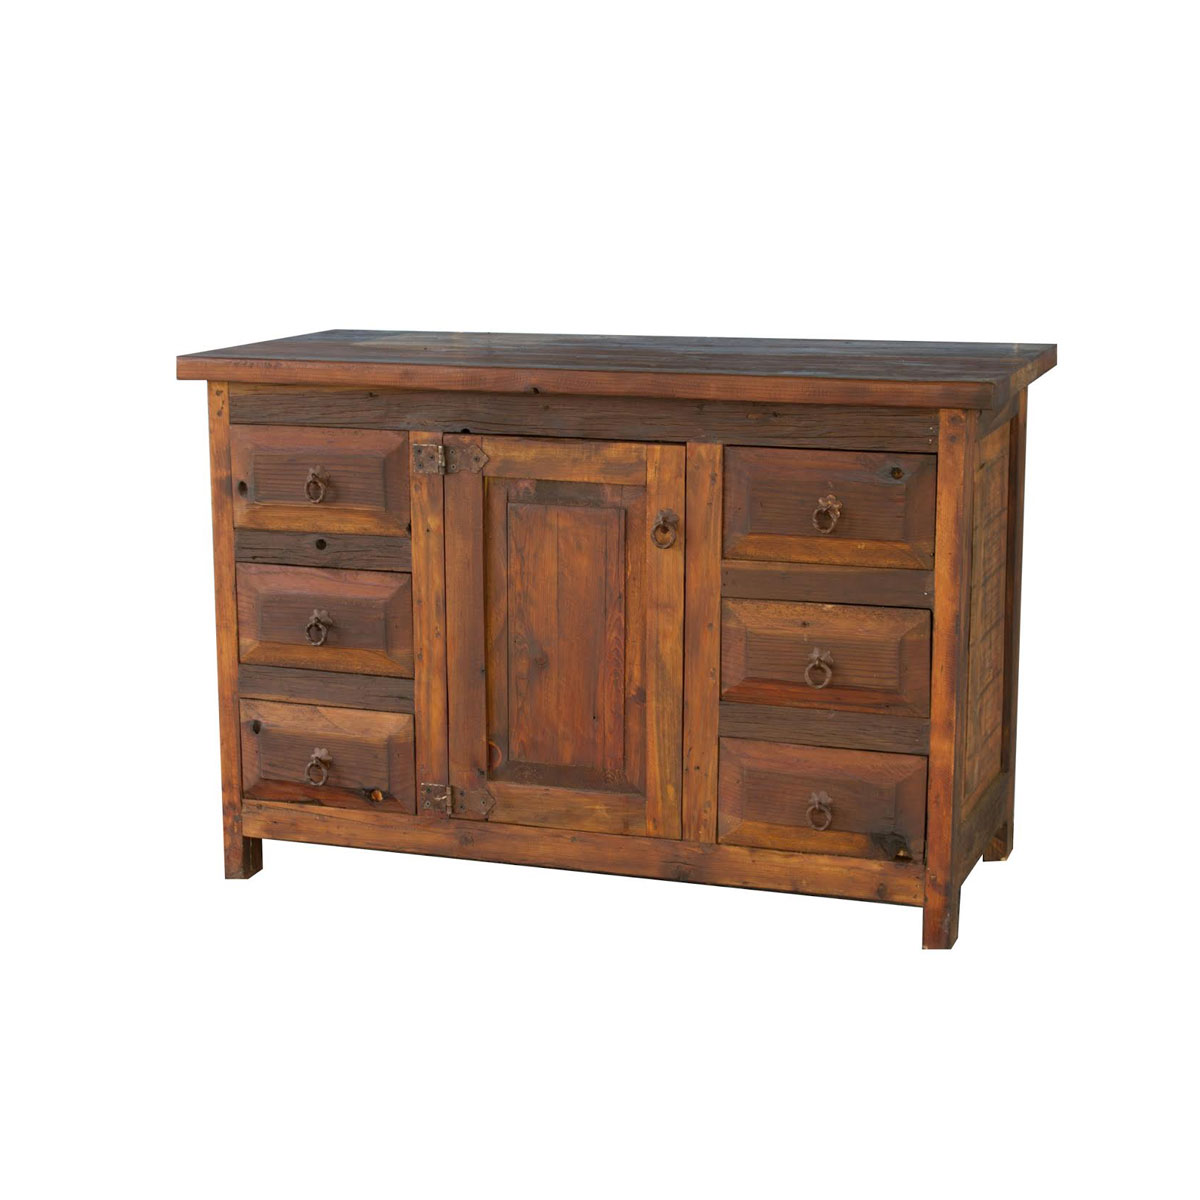 Beautiful Rustic Aspen Log Bathroom Vanity 36 Inch  Reclaimed Furniture Design